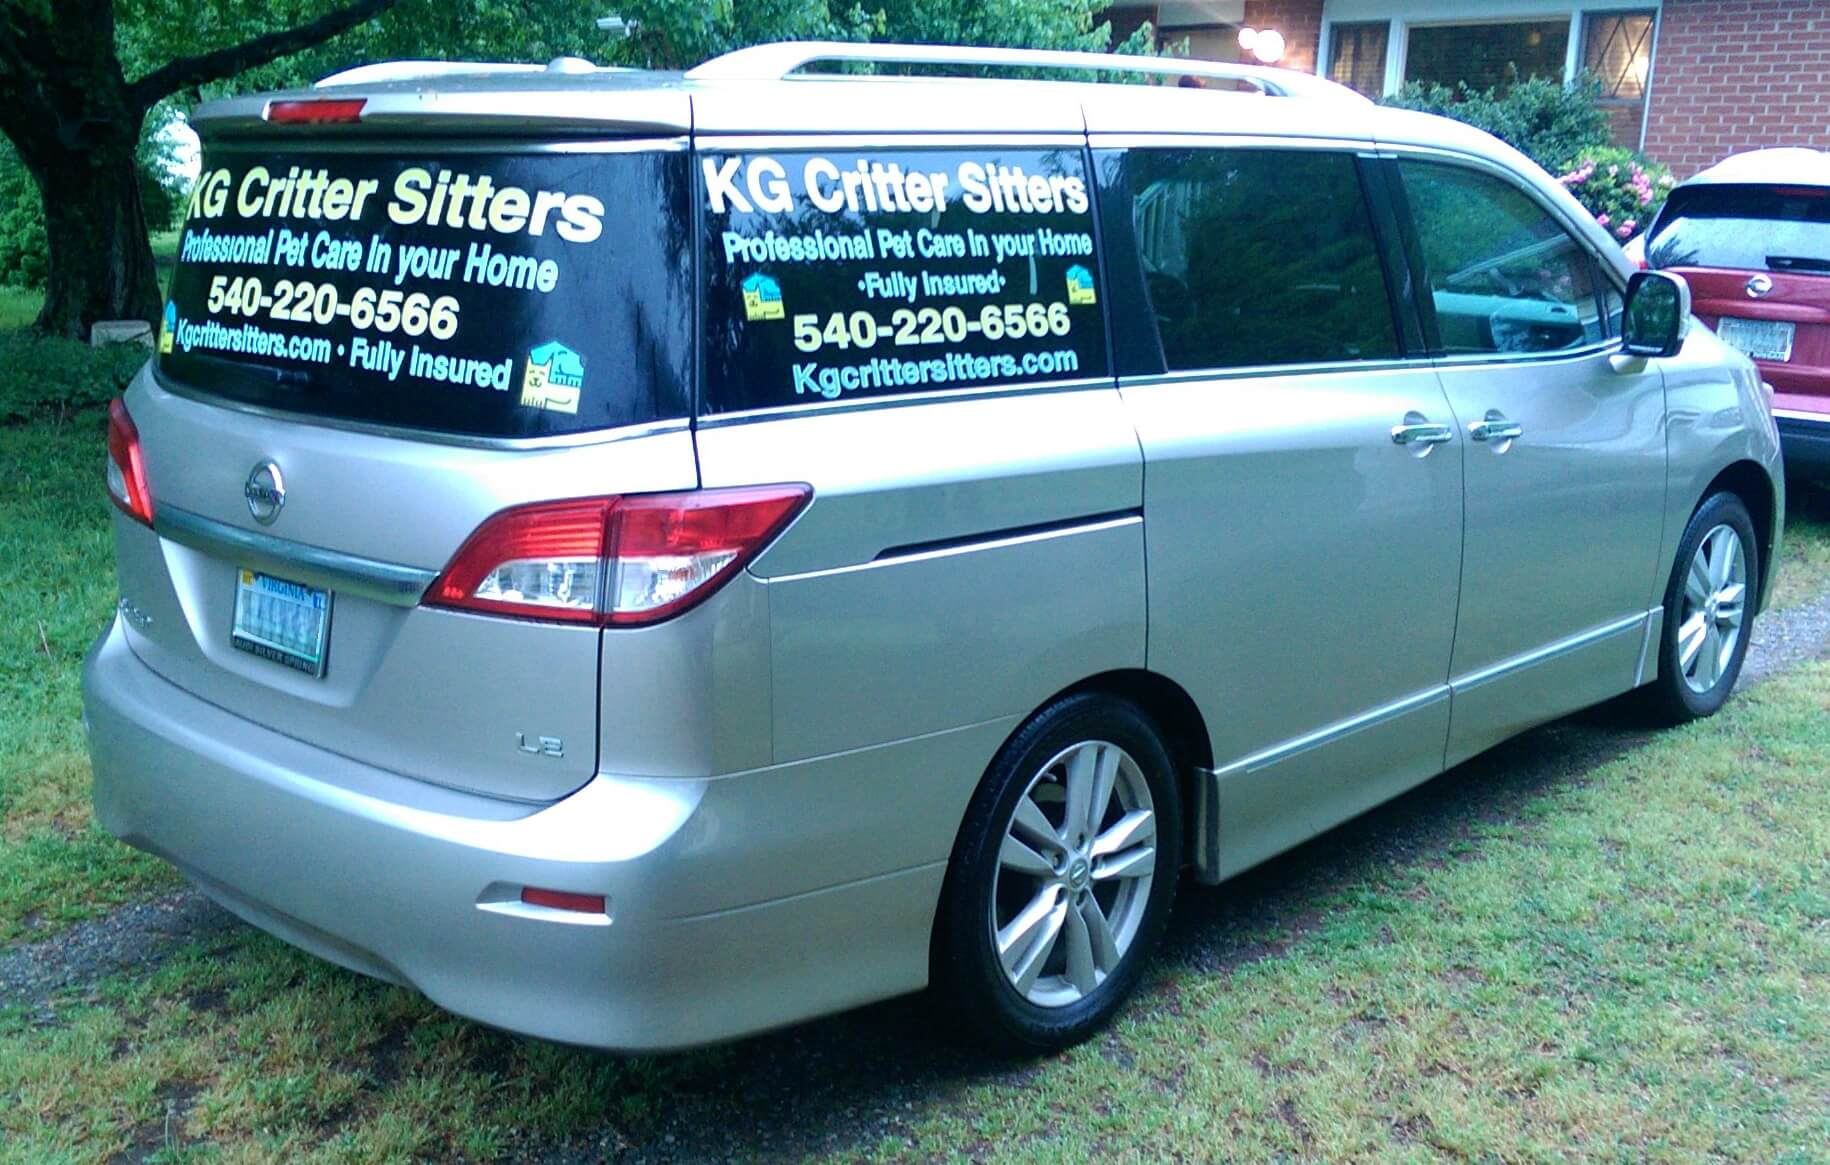 Silver 2011 Nissan Quest with KG Critter Sitters decals on the rear windows.